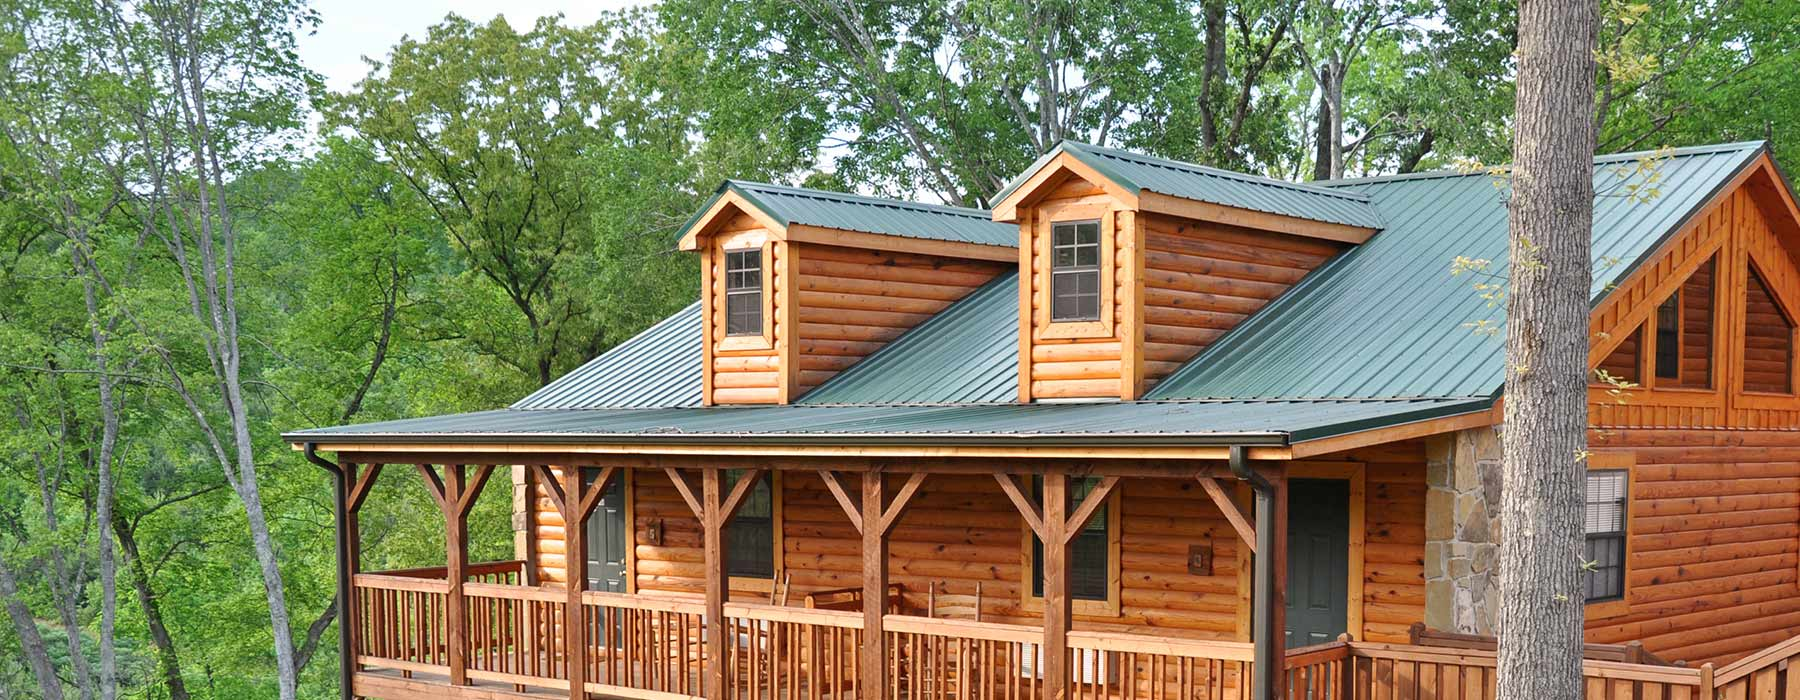 cabins smoky springs rentals tn colorado nc sugar co laurel cabin gatlinburg mountain